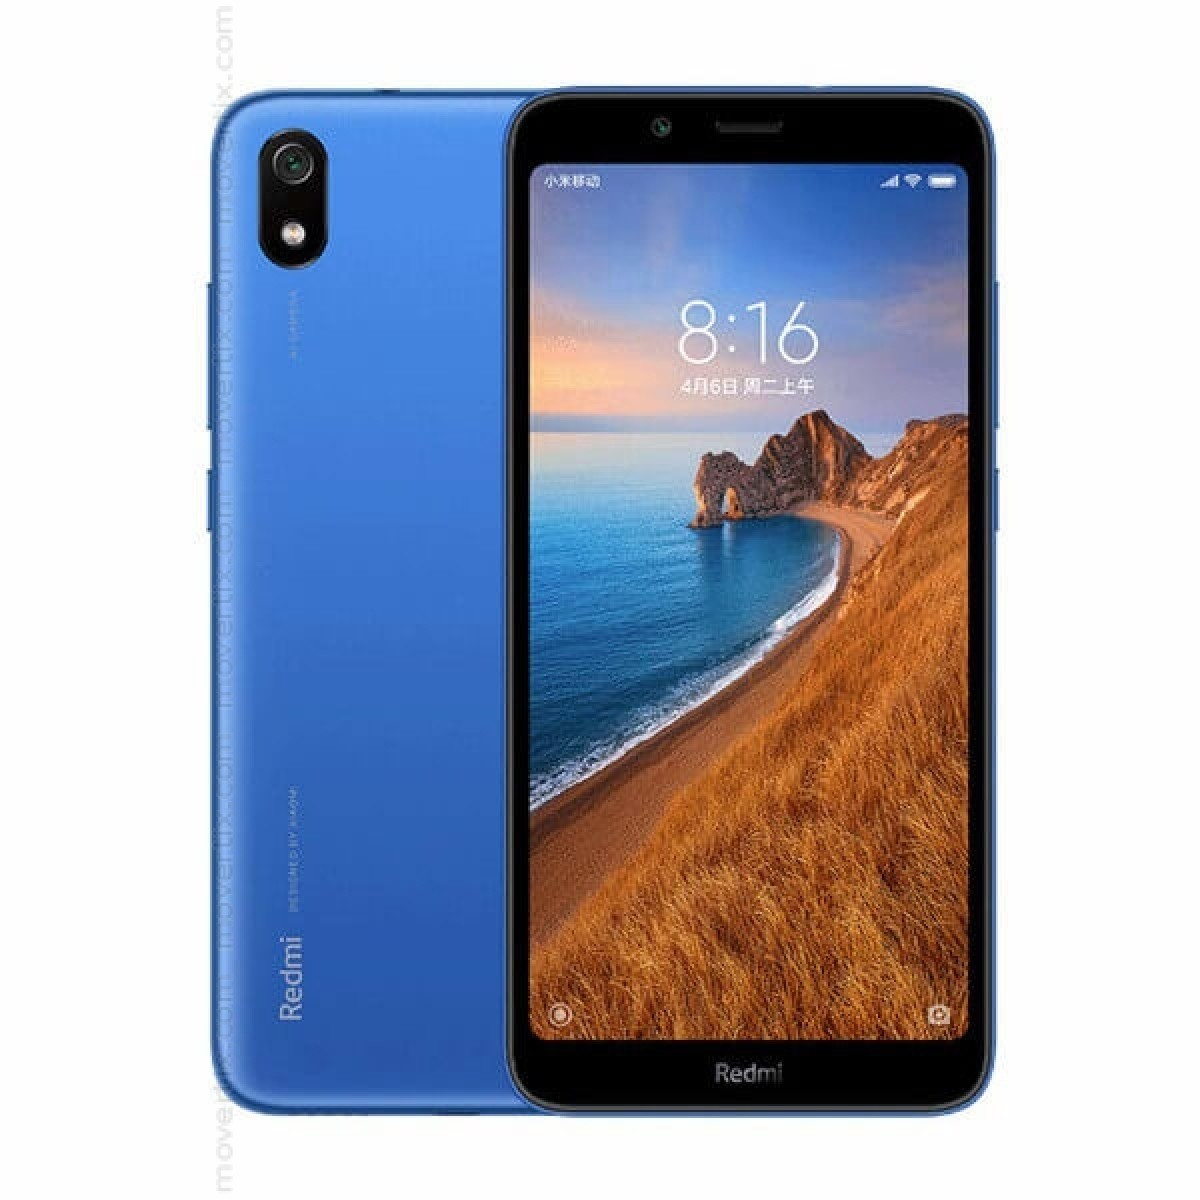 MOBILE PHONE XIAOMI 5.45 OCTA CORE 1.4GHZ 2GB 16GB DUAL SIM REDMI 7A BLUE  كفالة ذهبية ,Android Smartphone